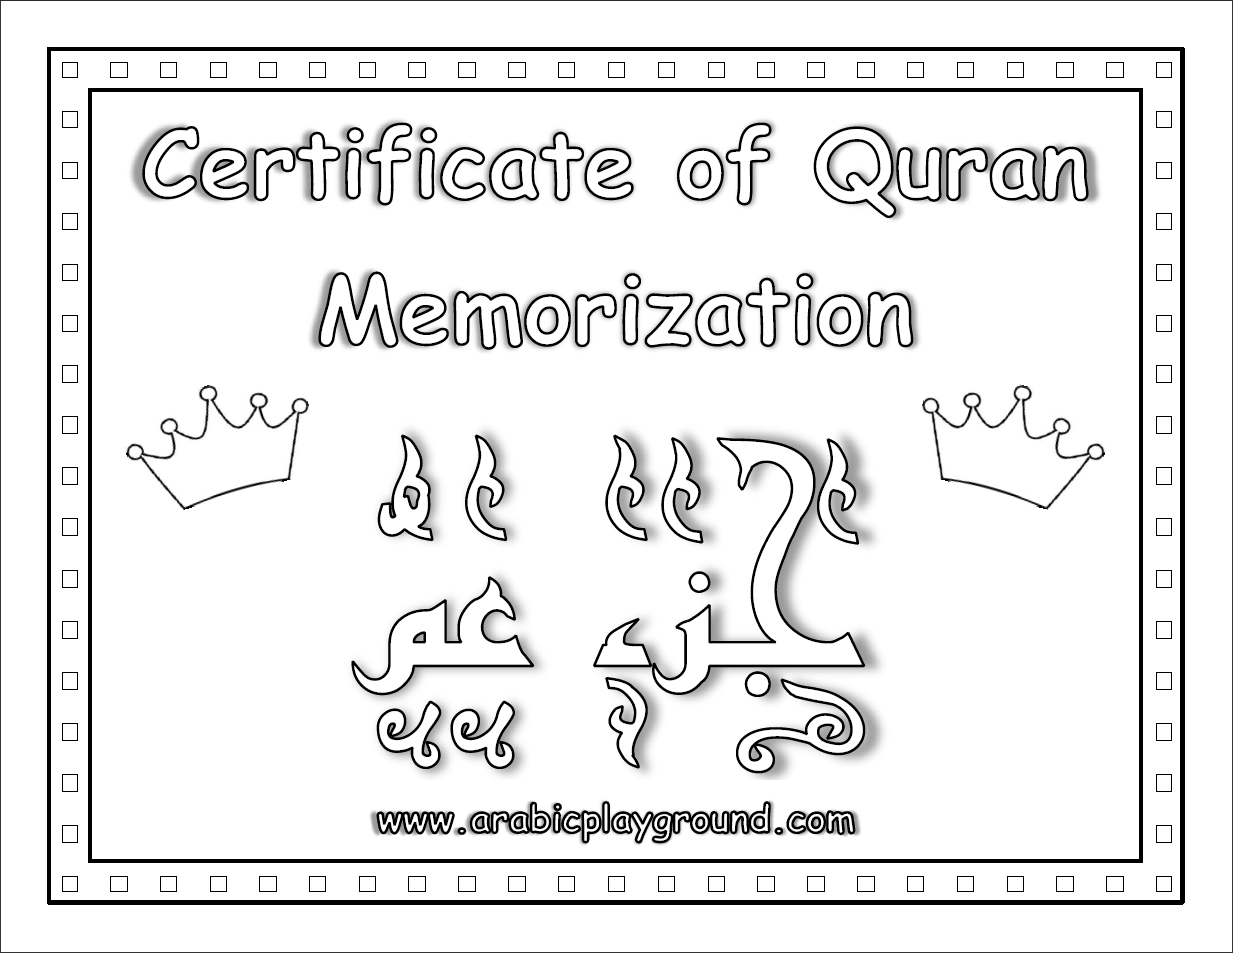 Certificate of quran memorization islam for kids pinterest free certificate of quran memorization by arabic playground yadclub Choice Image